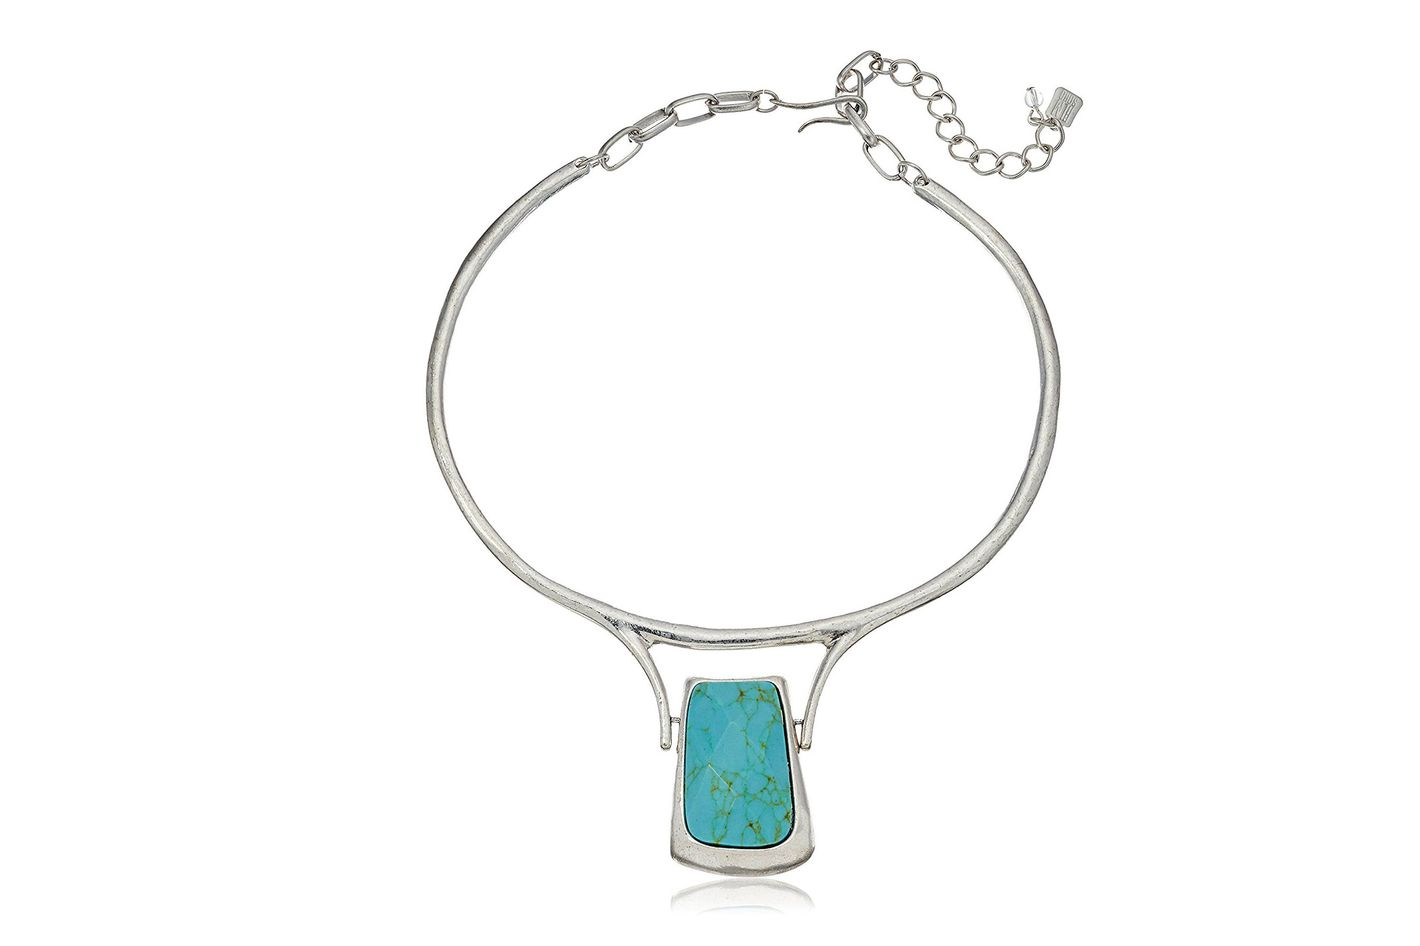 Robert Lee Morris Geometric Semiprecious Turquoise Necklace